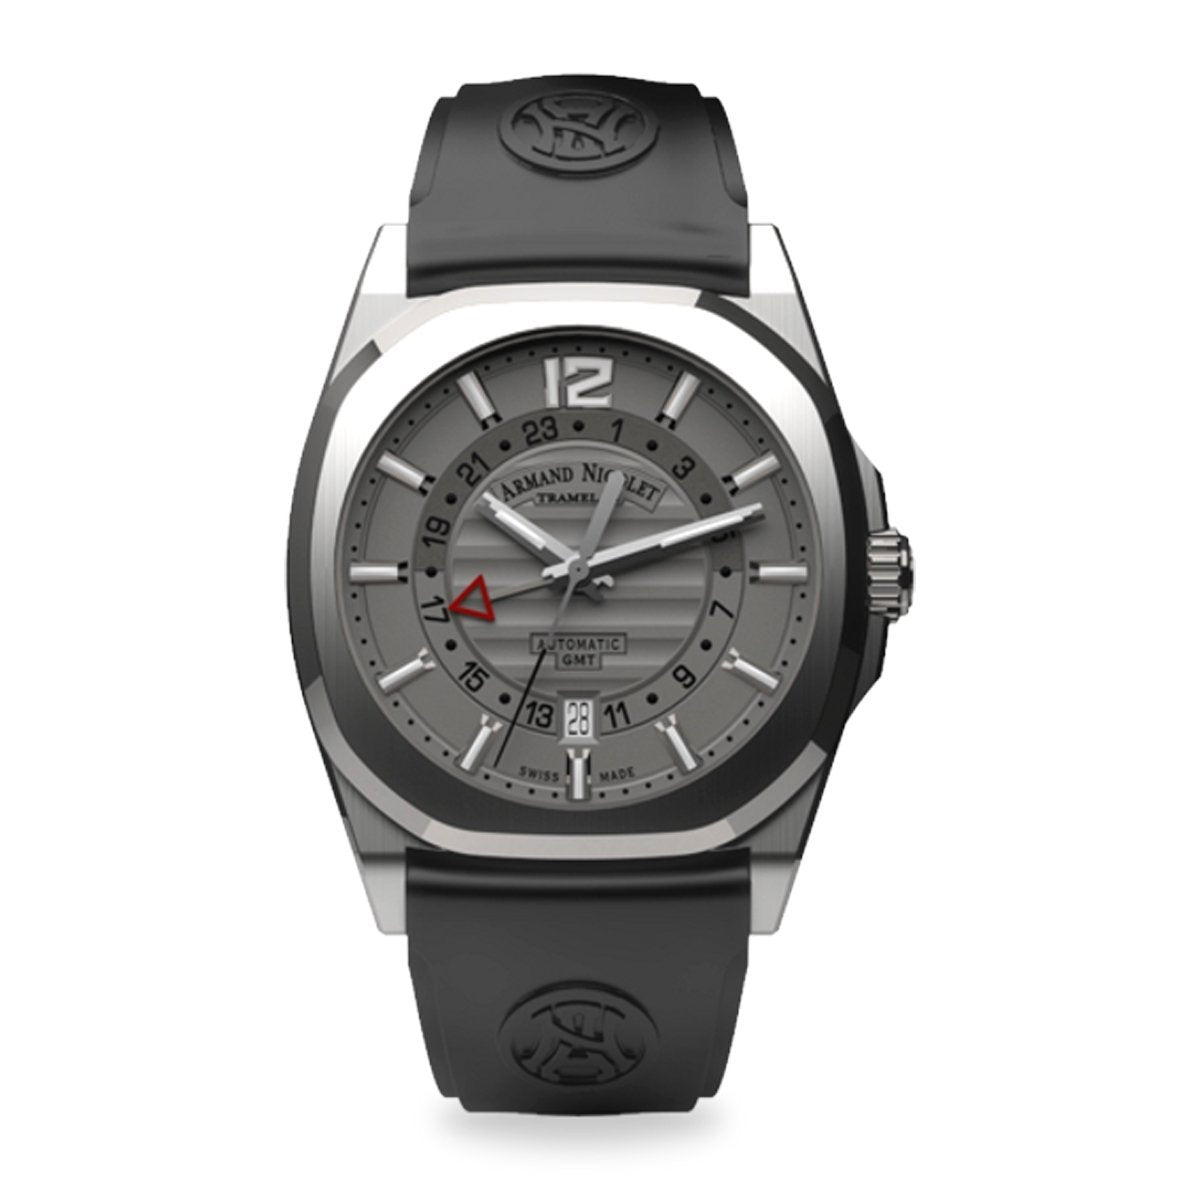 Armand Nicolet J09-3 GMT Watch Black Rubber